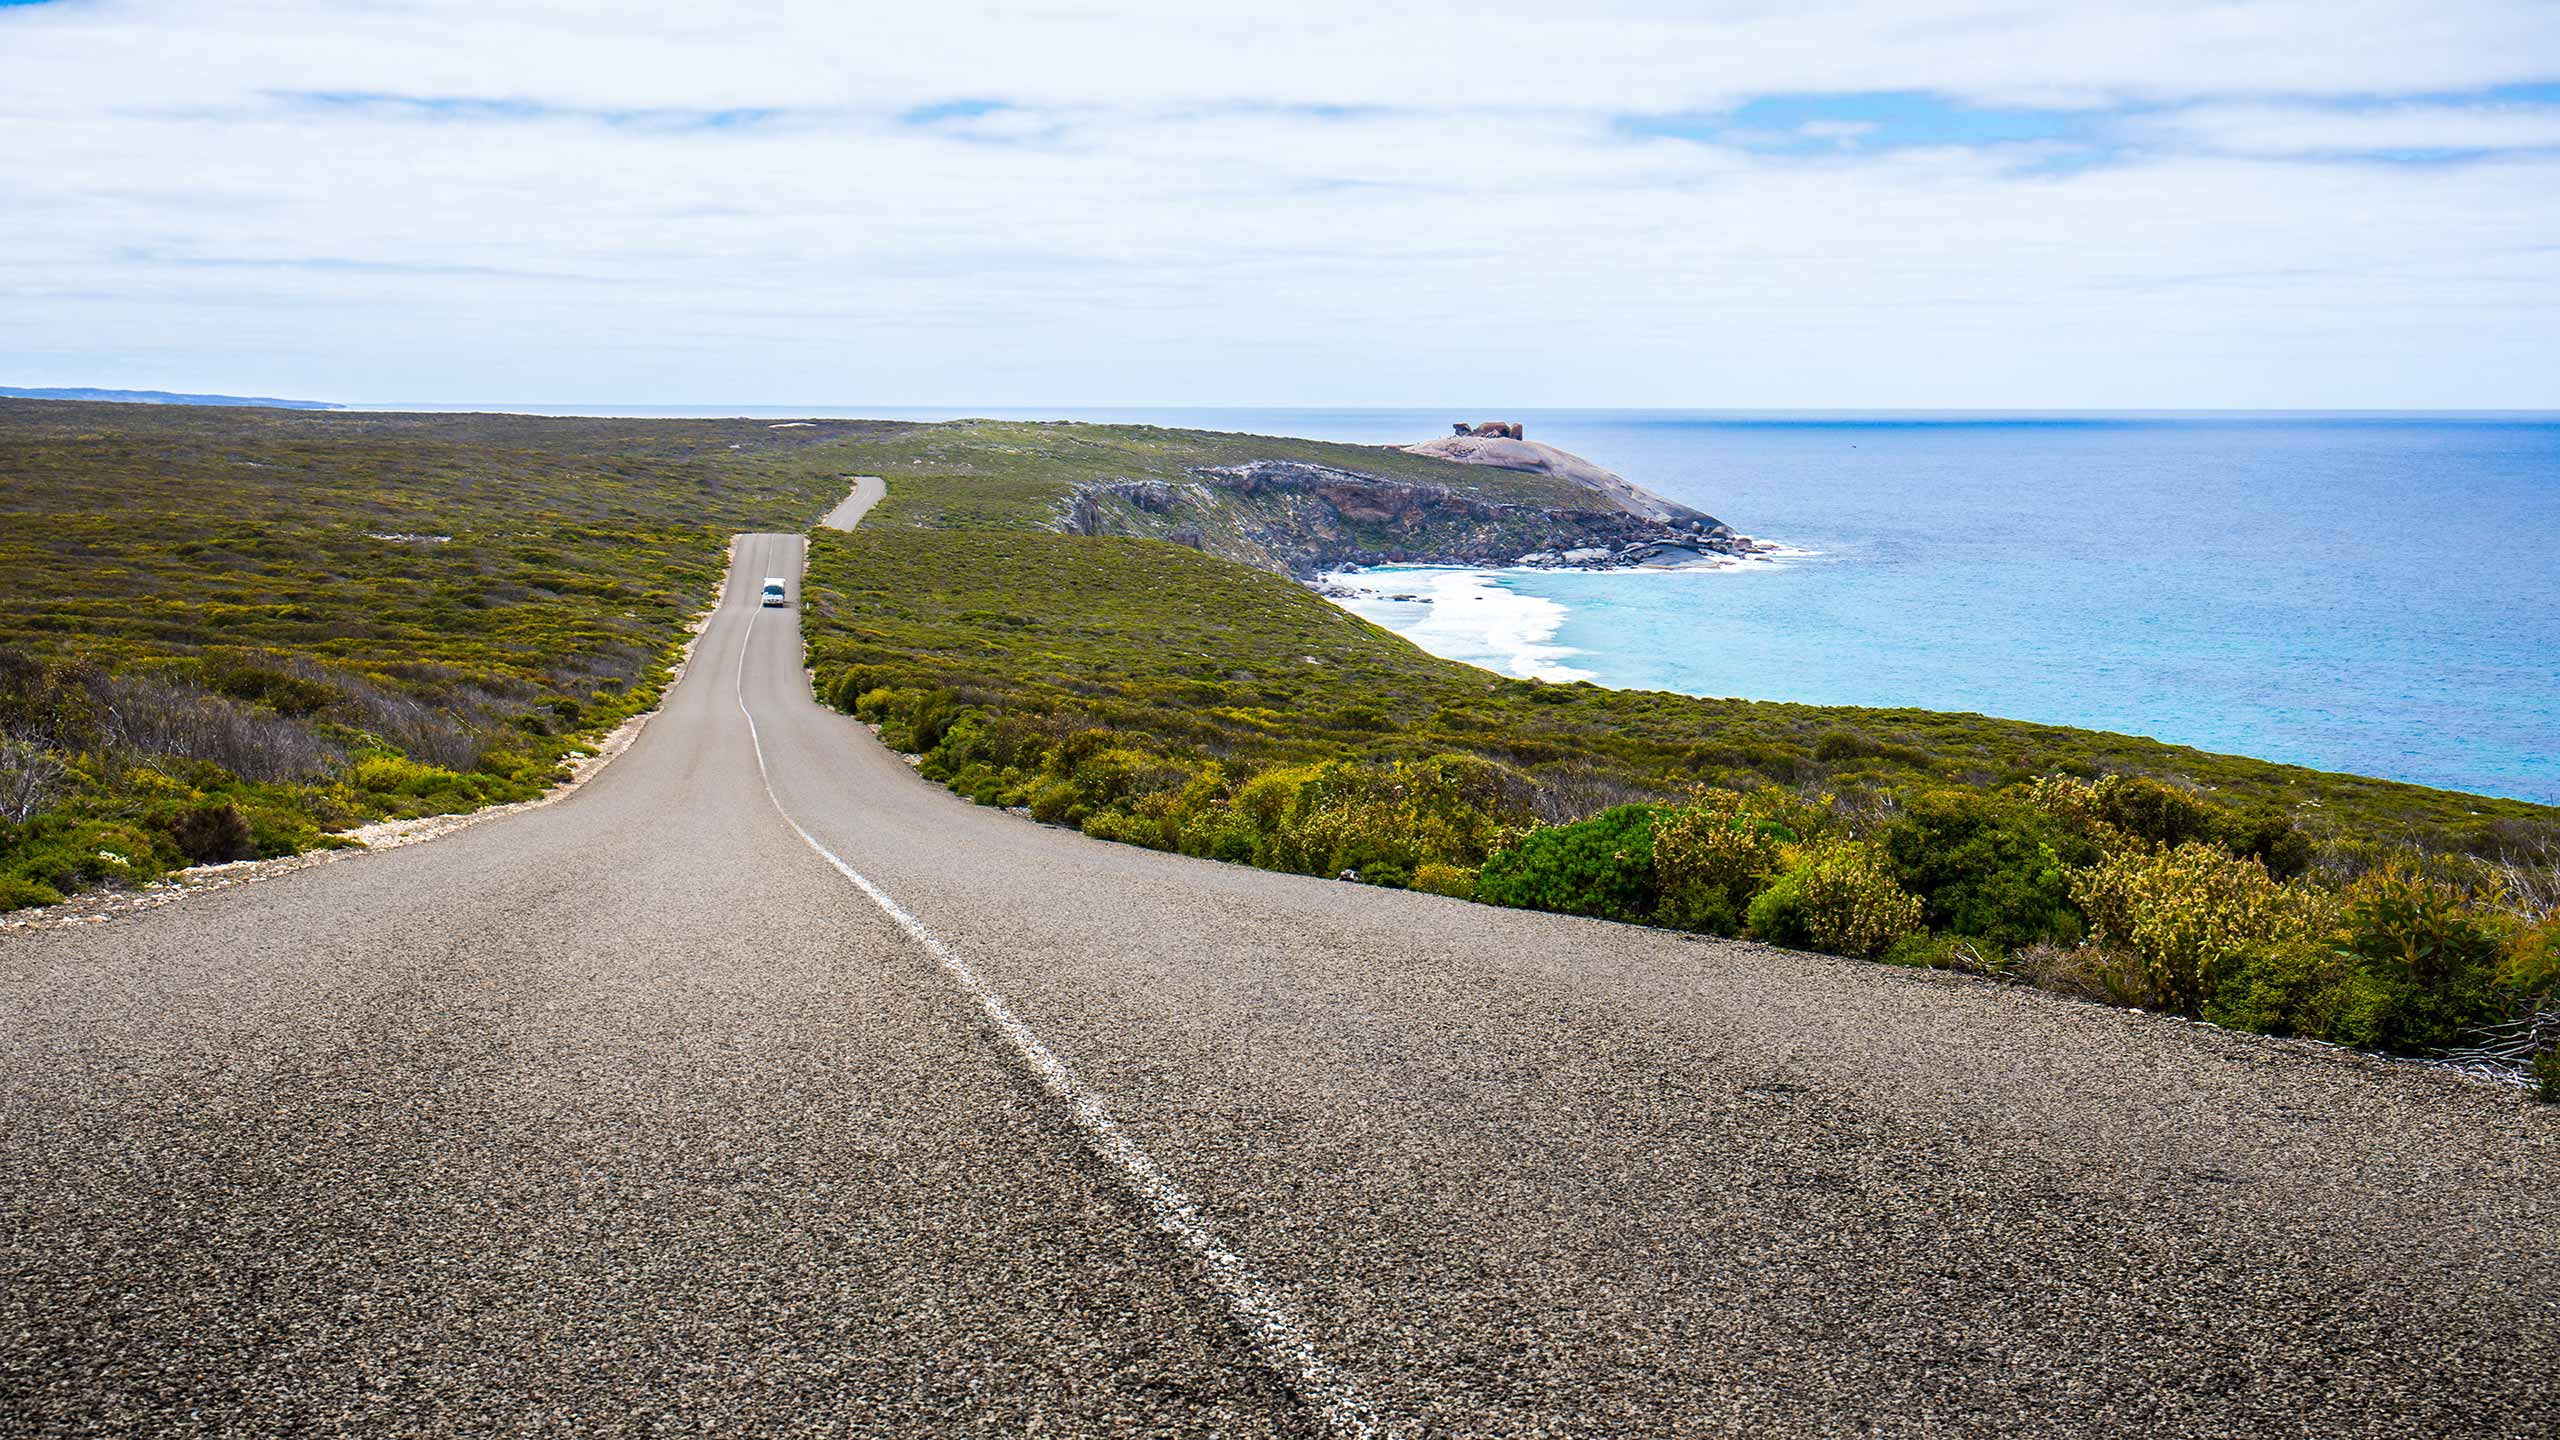 Road trip Kangaroo Island in an electric hire car